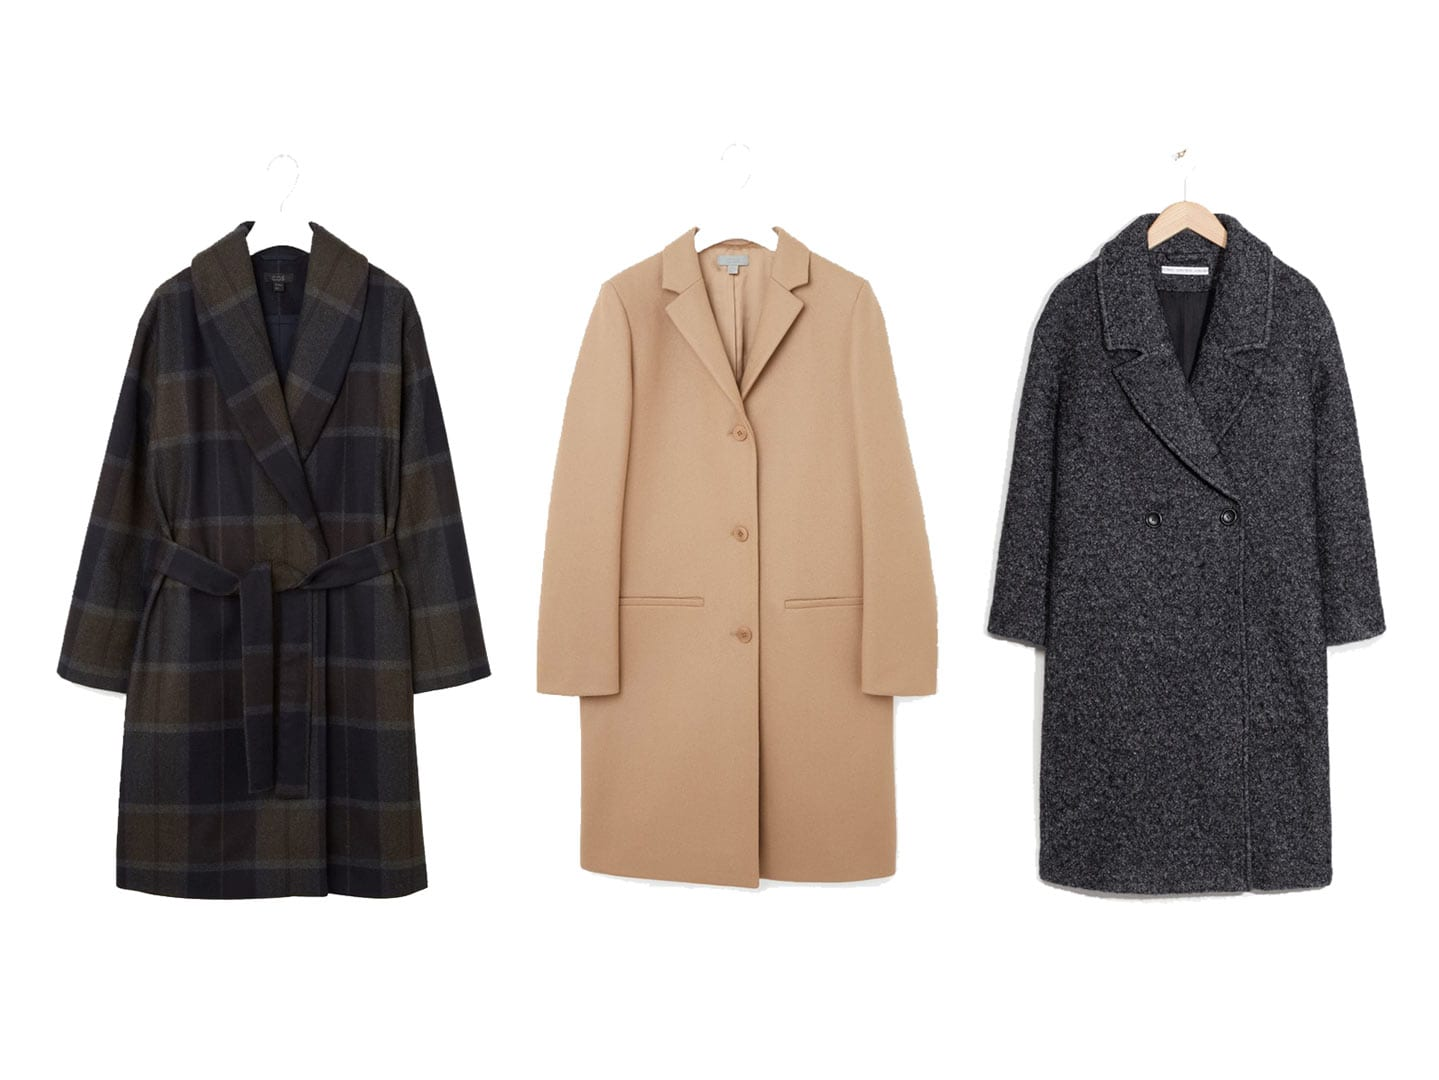 AW16 Best Winter Coats From The High Street